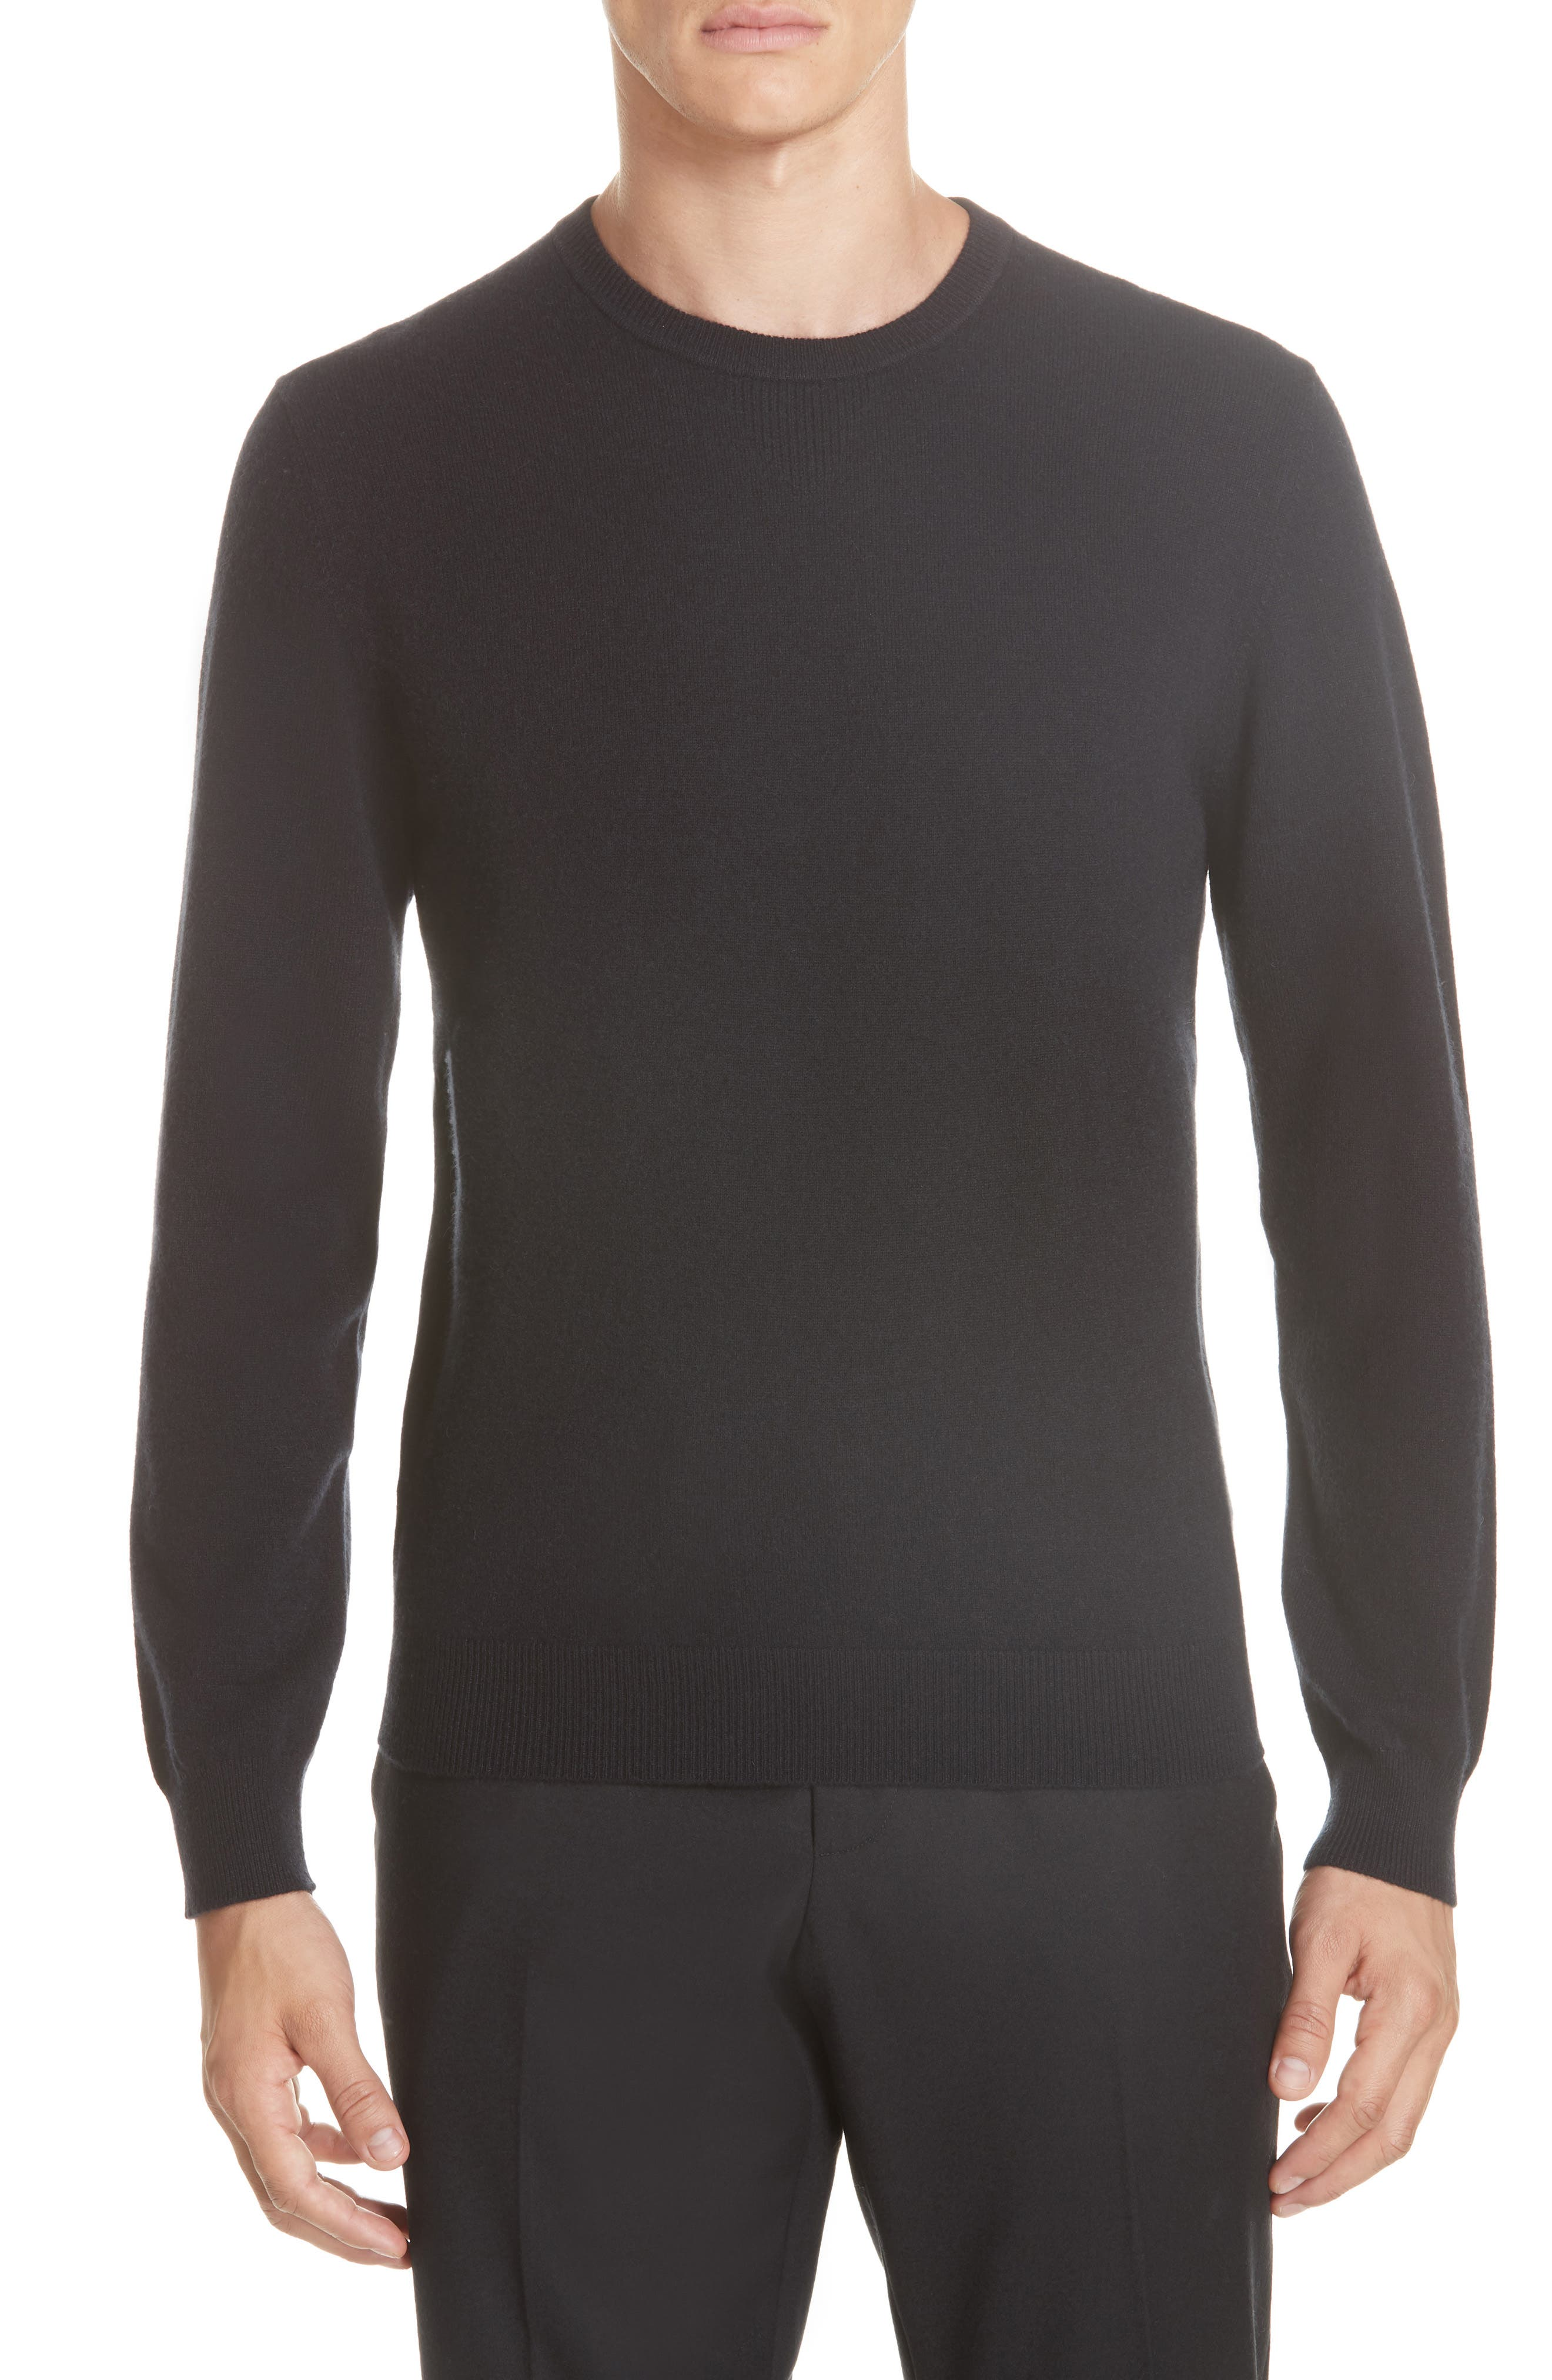 Cashmere Blend Crewneck Sweater,                         Main,                         color, BLACK